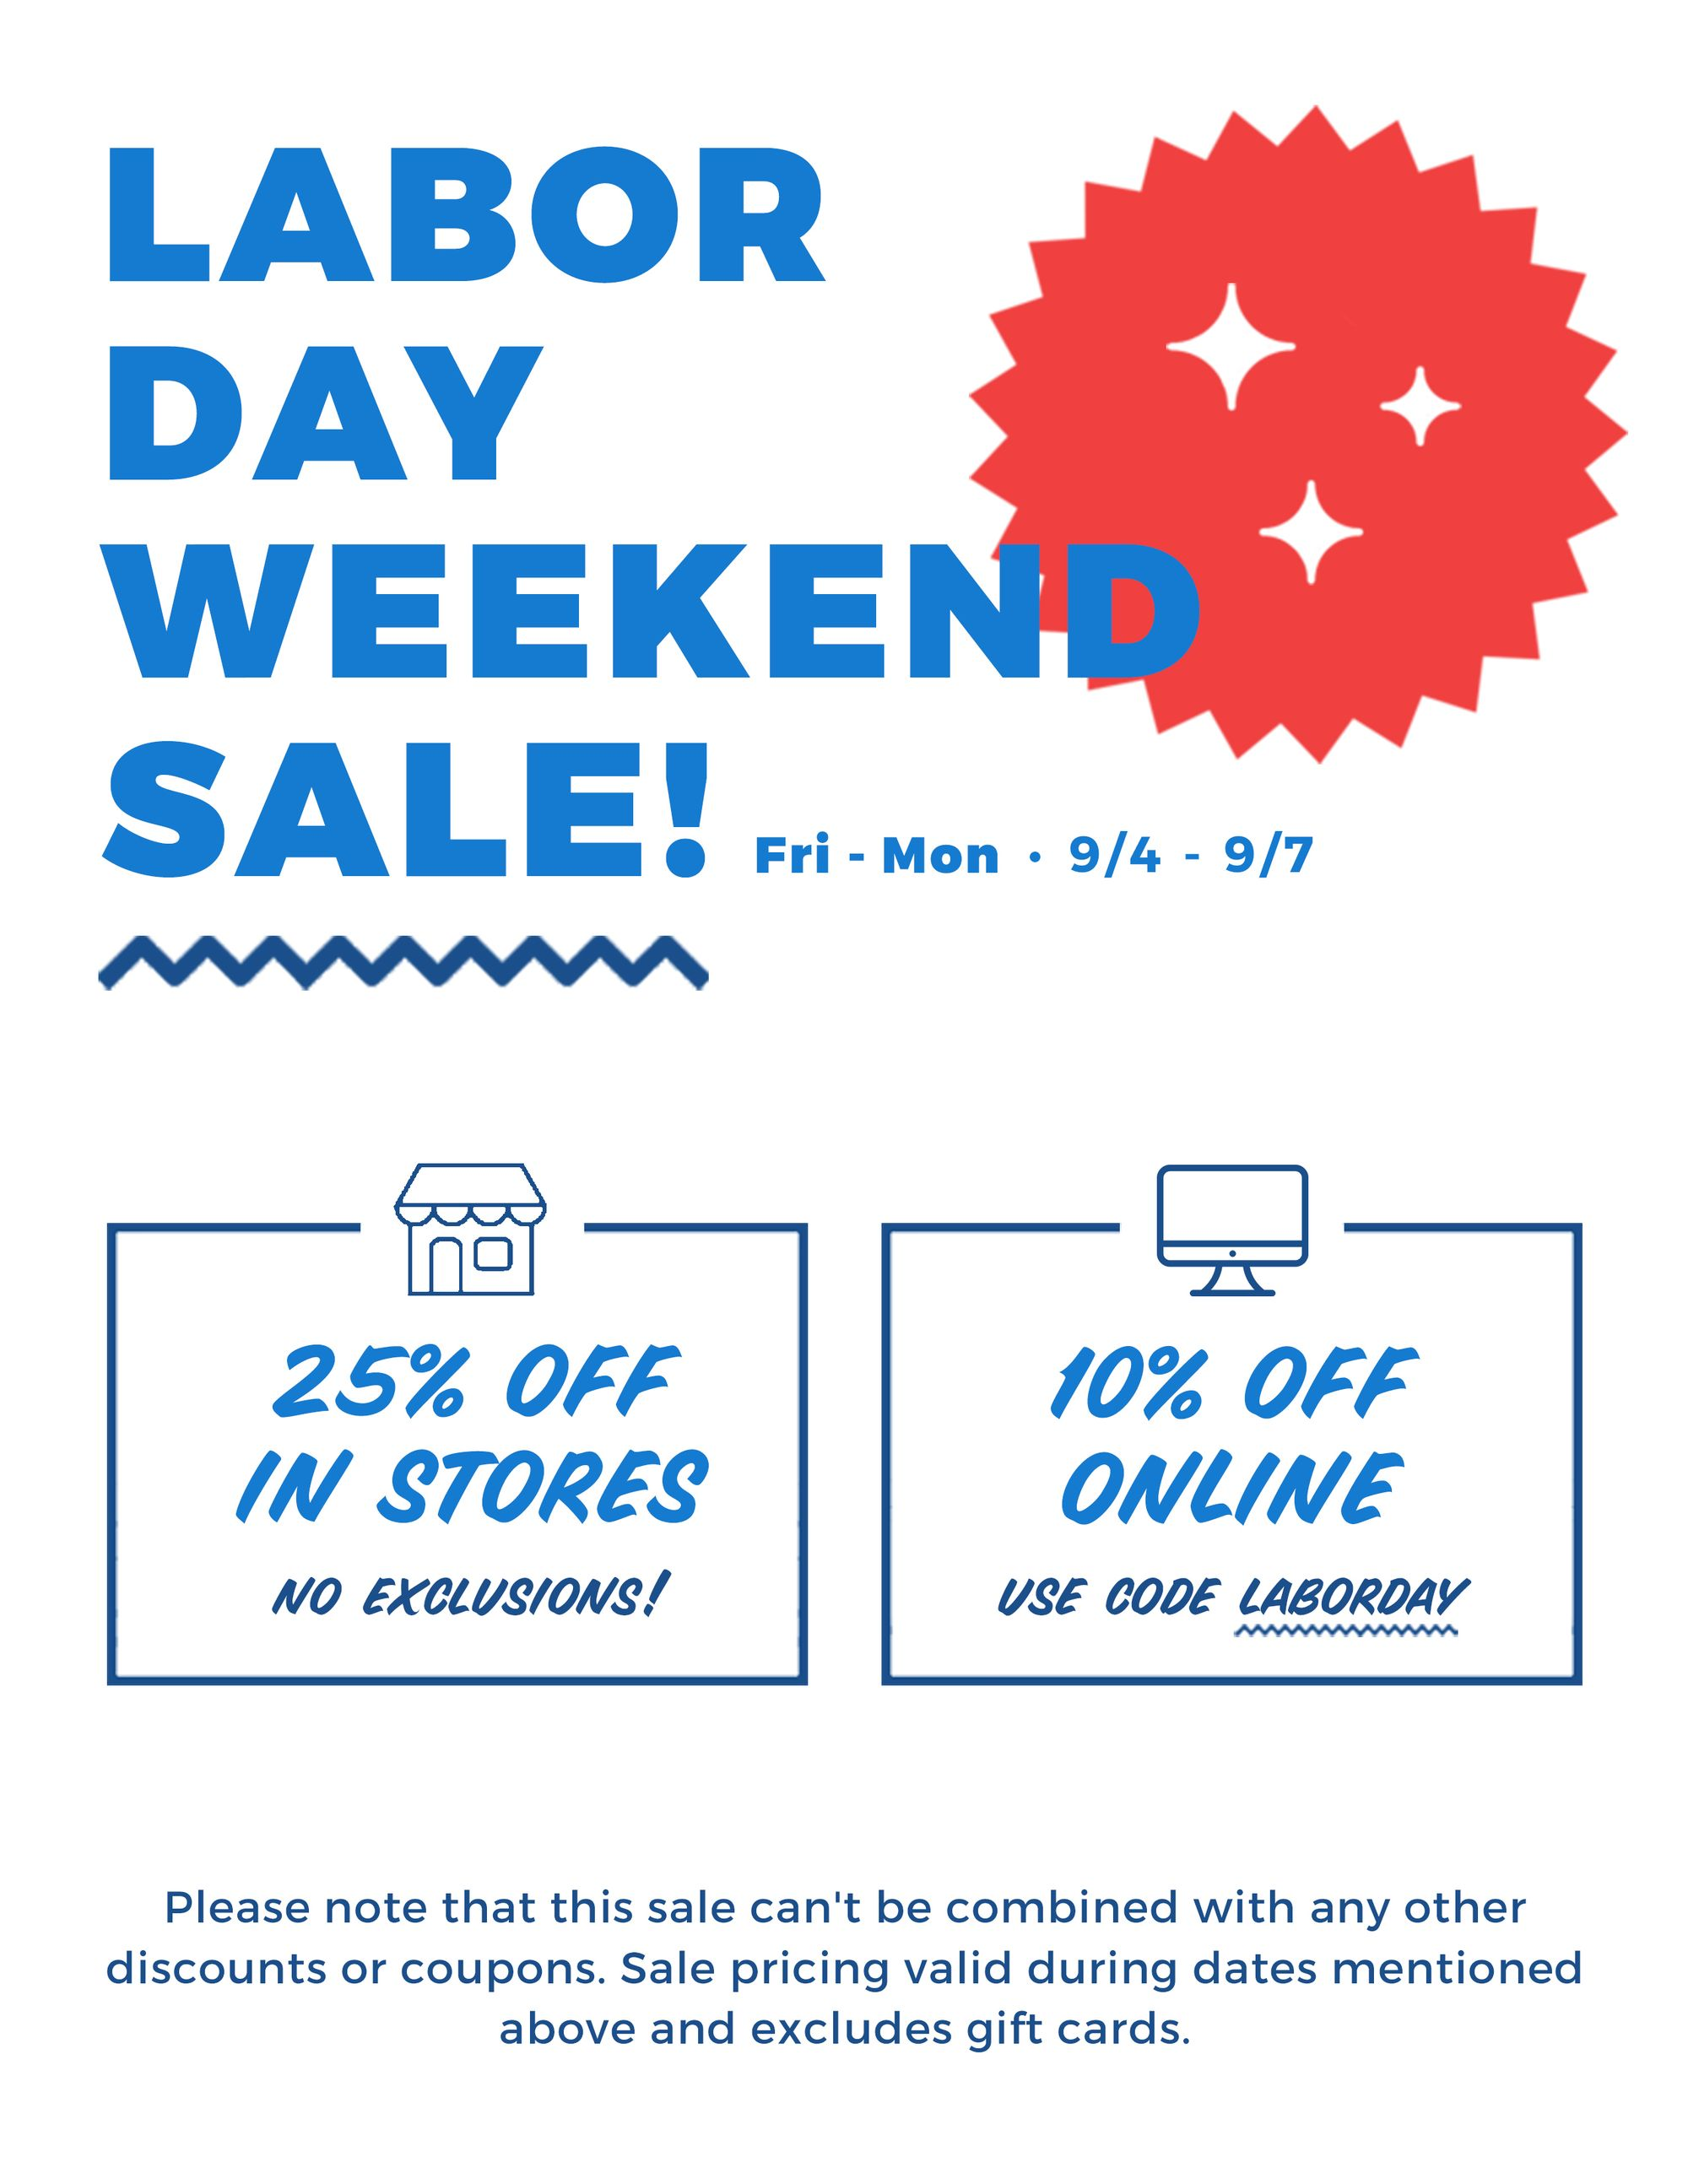 Labor Day Weekend Sale! 25% off in stores and 10% off online!